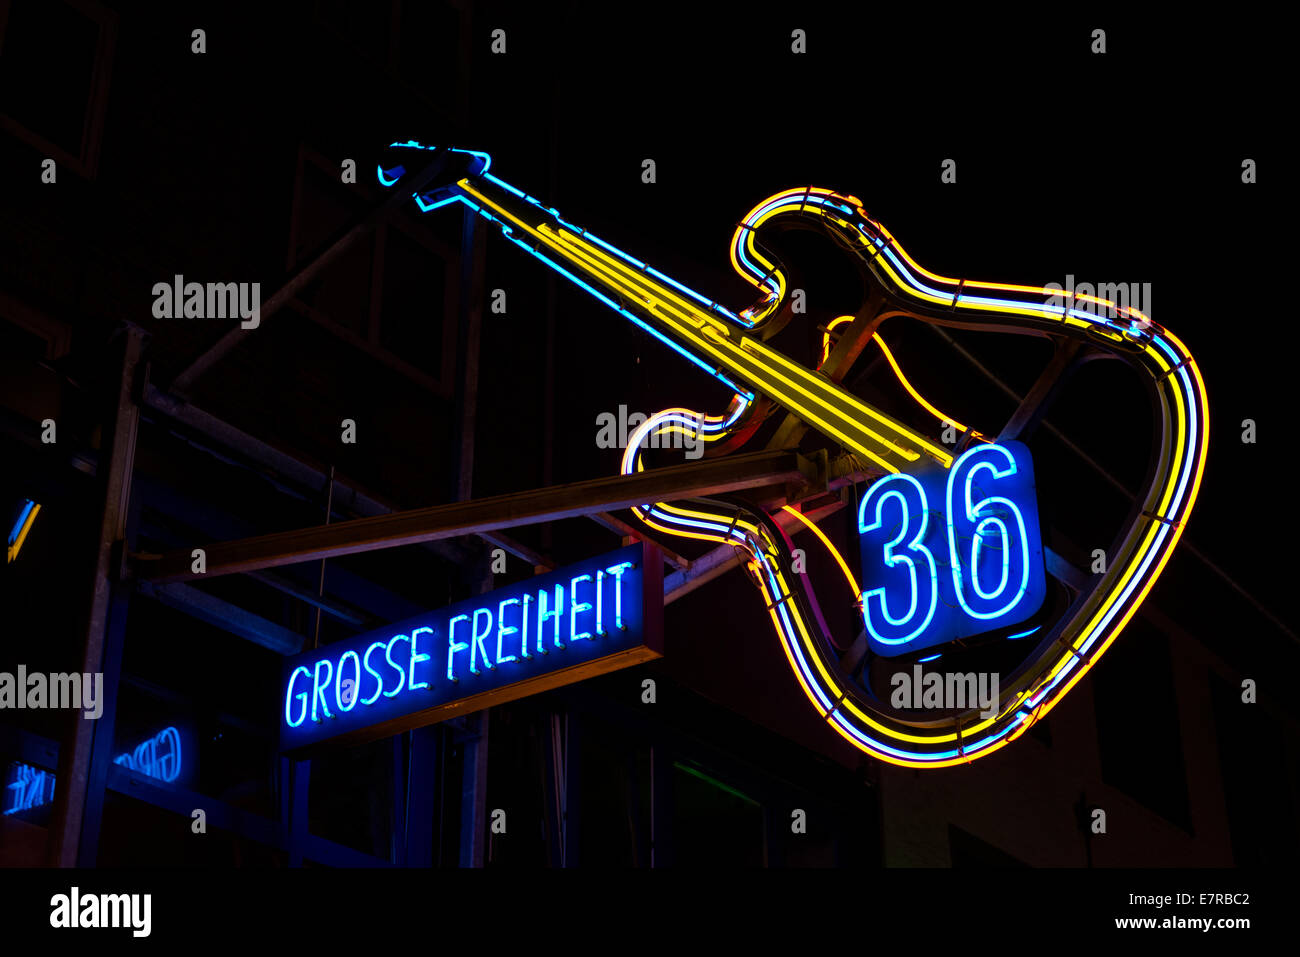 36 Grosse Freiheit, where The Beatles played in the 1960s is in Hamburg's Reeperbahn district. Stock Photo